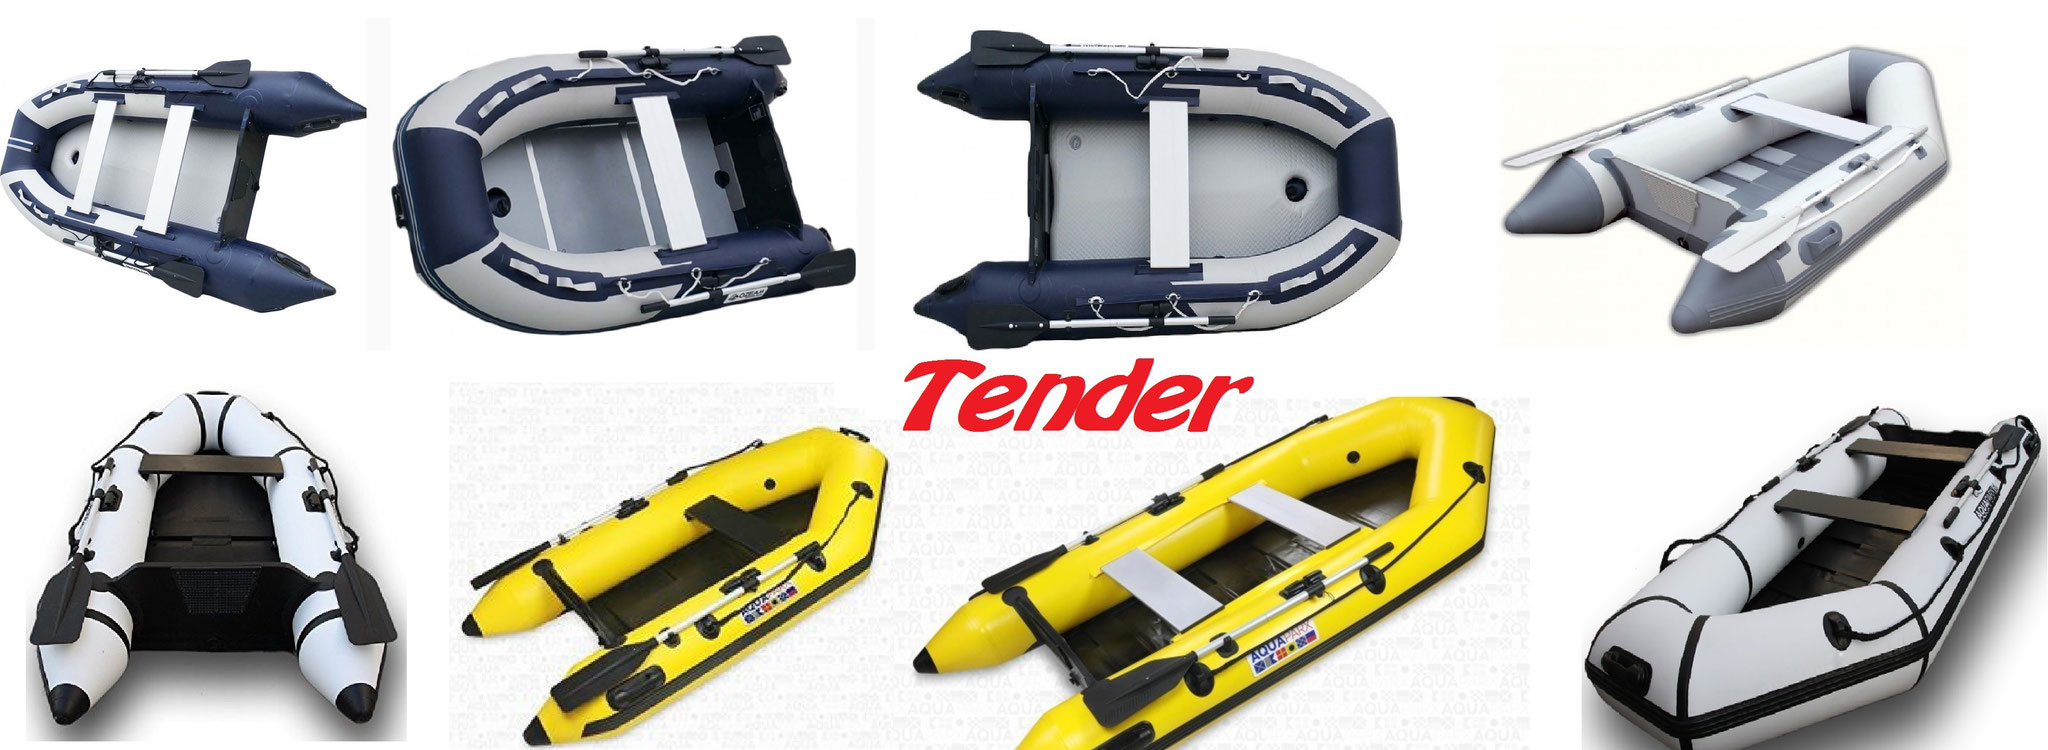 Tender Aquaparx - Ozeam - ViaMare e Z-Ray